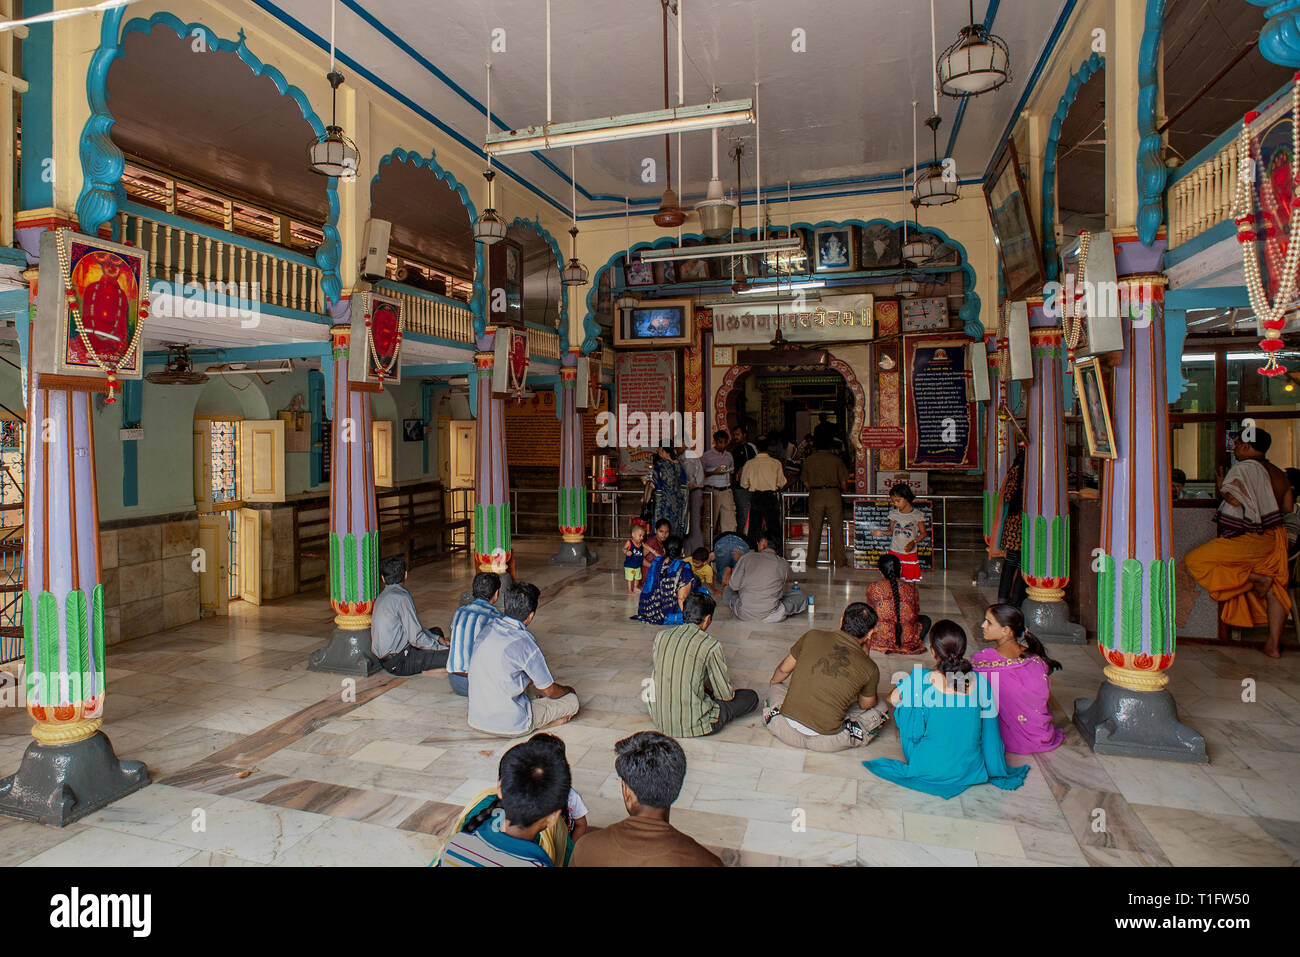 Ganesh Trompe A Droite 12 06 2009 stock photos & 12 06 2009 stock images - alamy